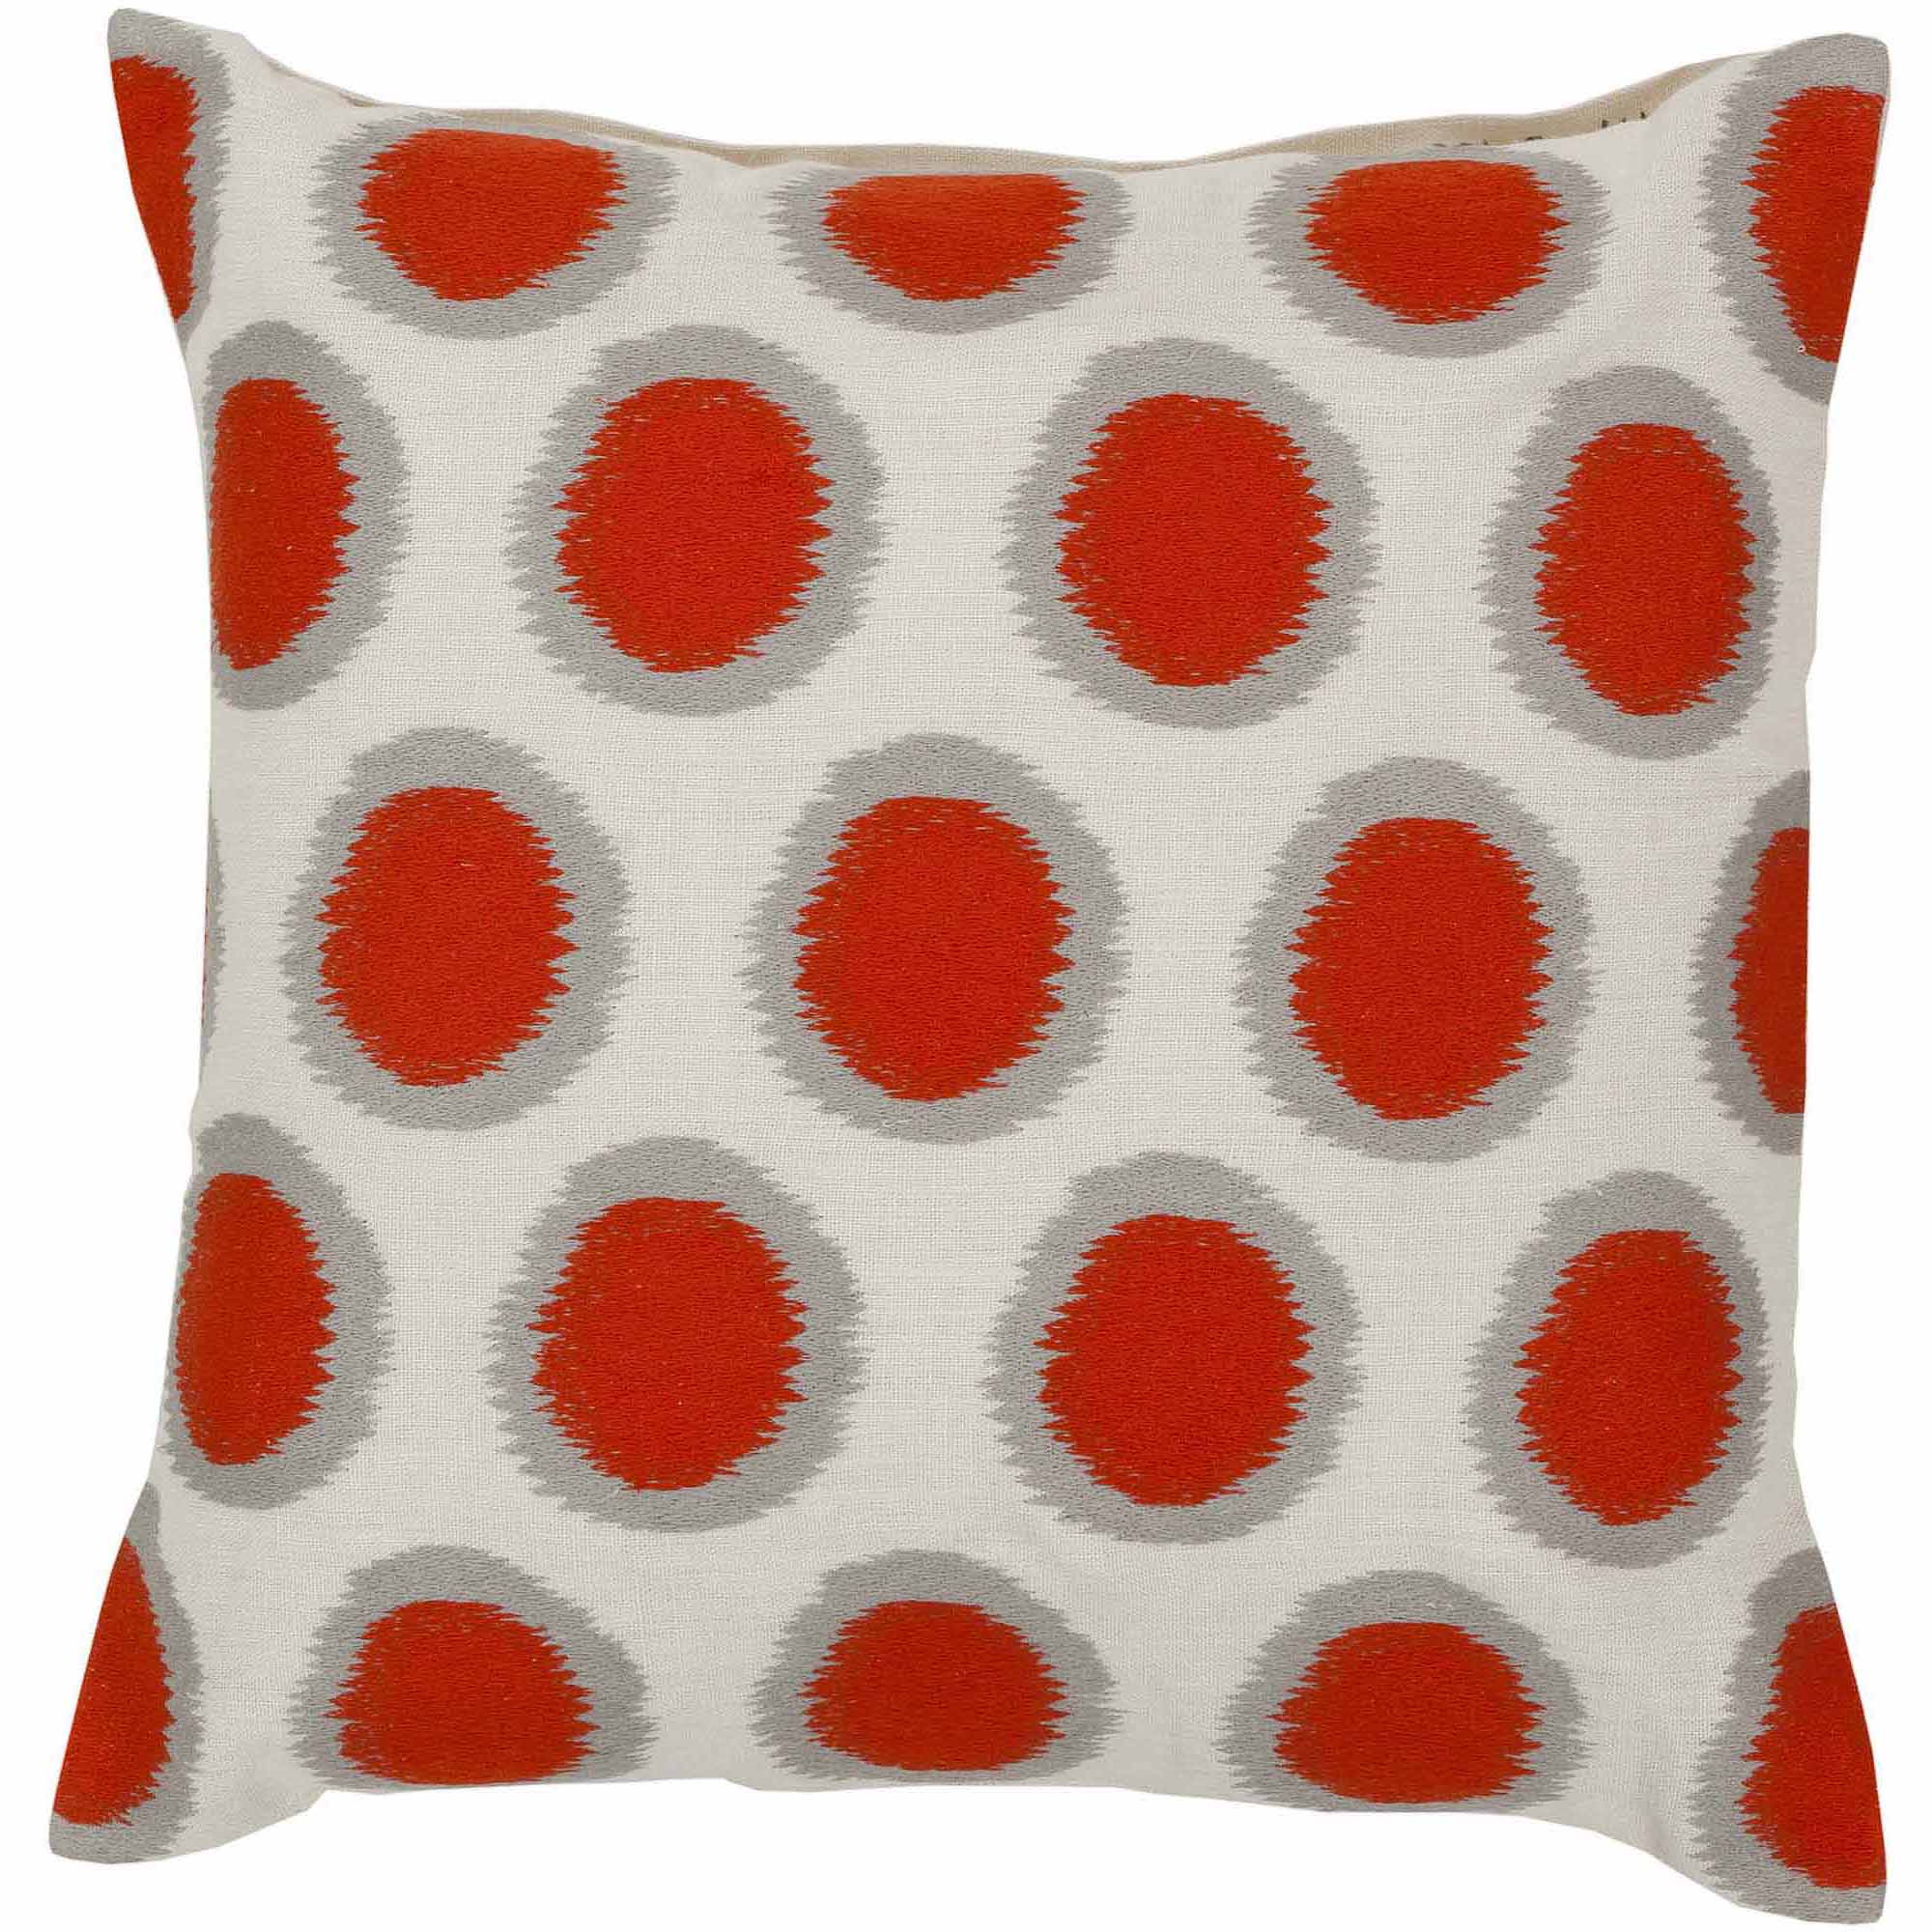 Art of Knot Amory Hand Crafted Satin Embroidery Circles Linen Decorative Pillow with Poly Filler, Poppy